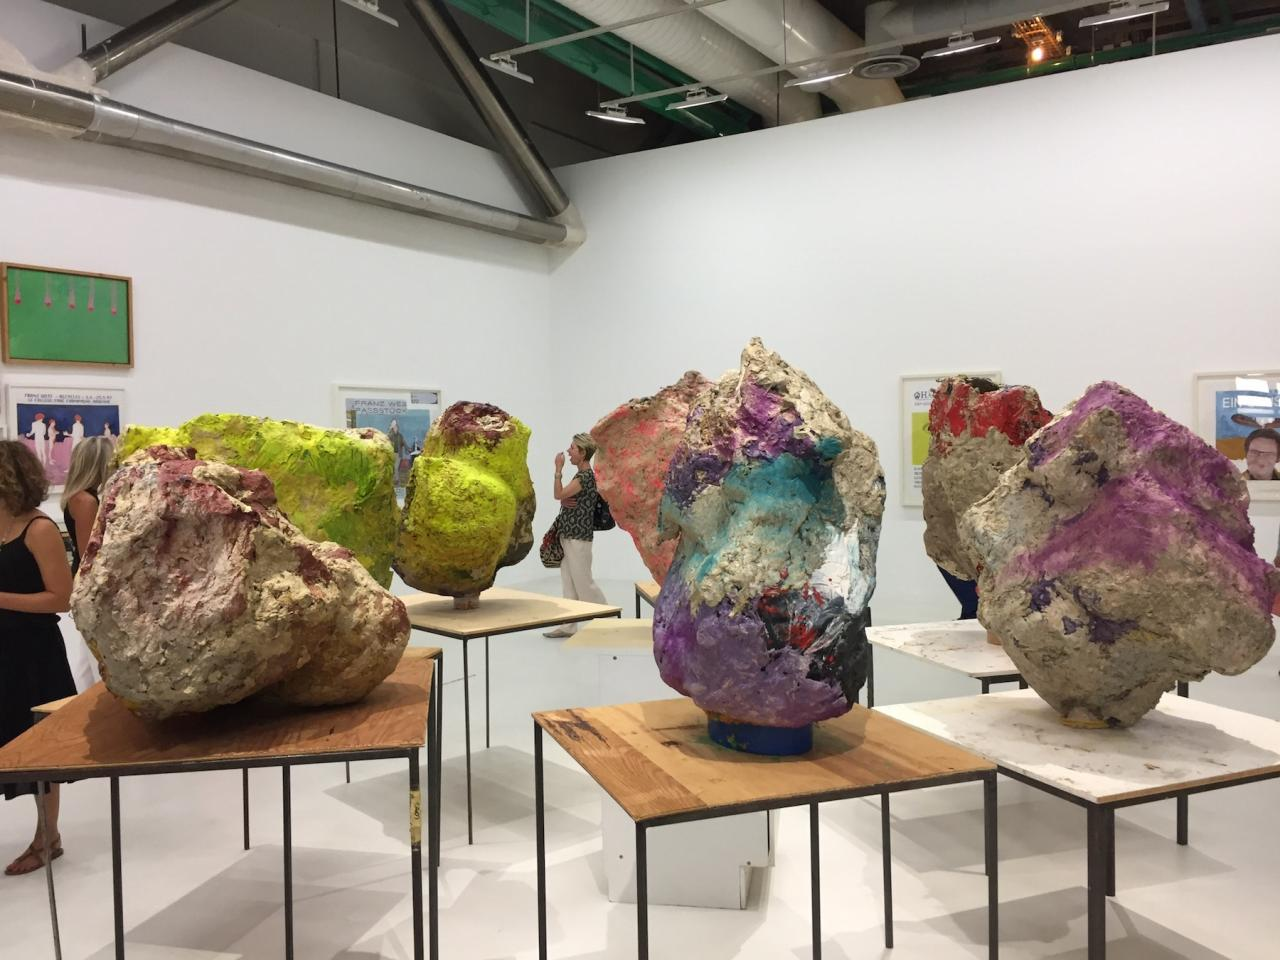 Franz West Gruppe mit Kabinett  (Group with Cabinet, 2001),papier-mâché, gauze, tables, set of eight sculptures, dimensions variable